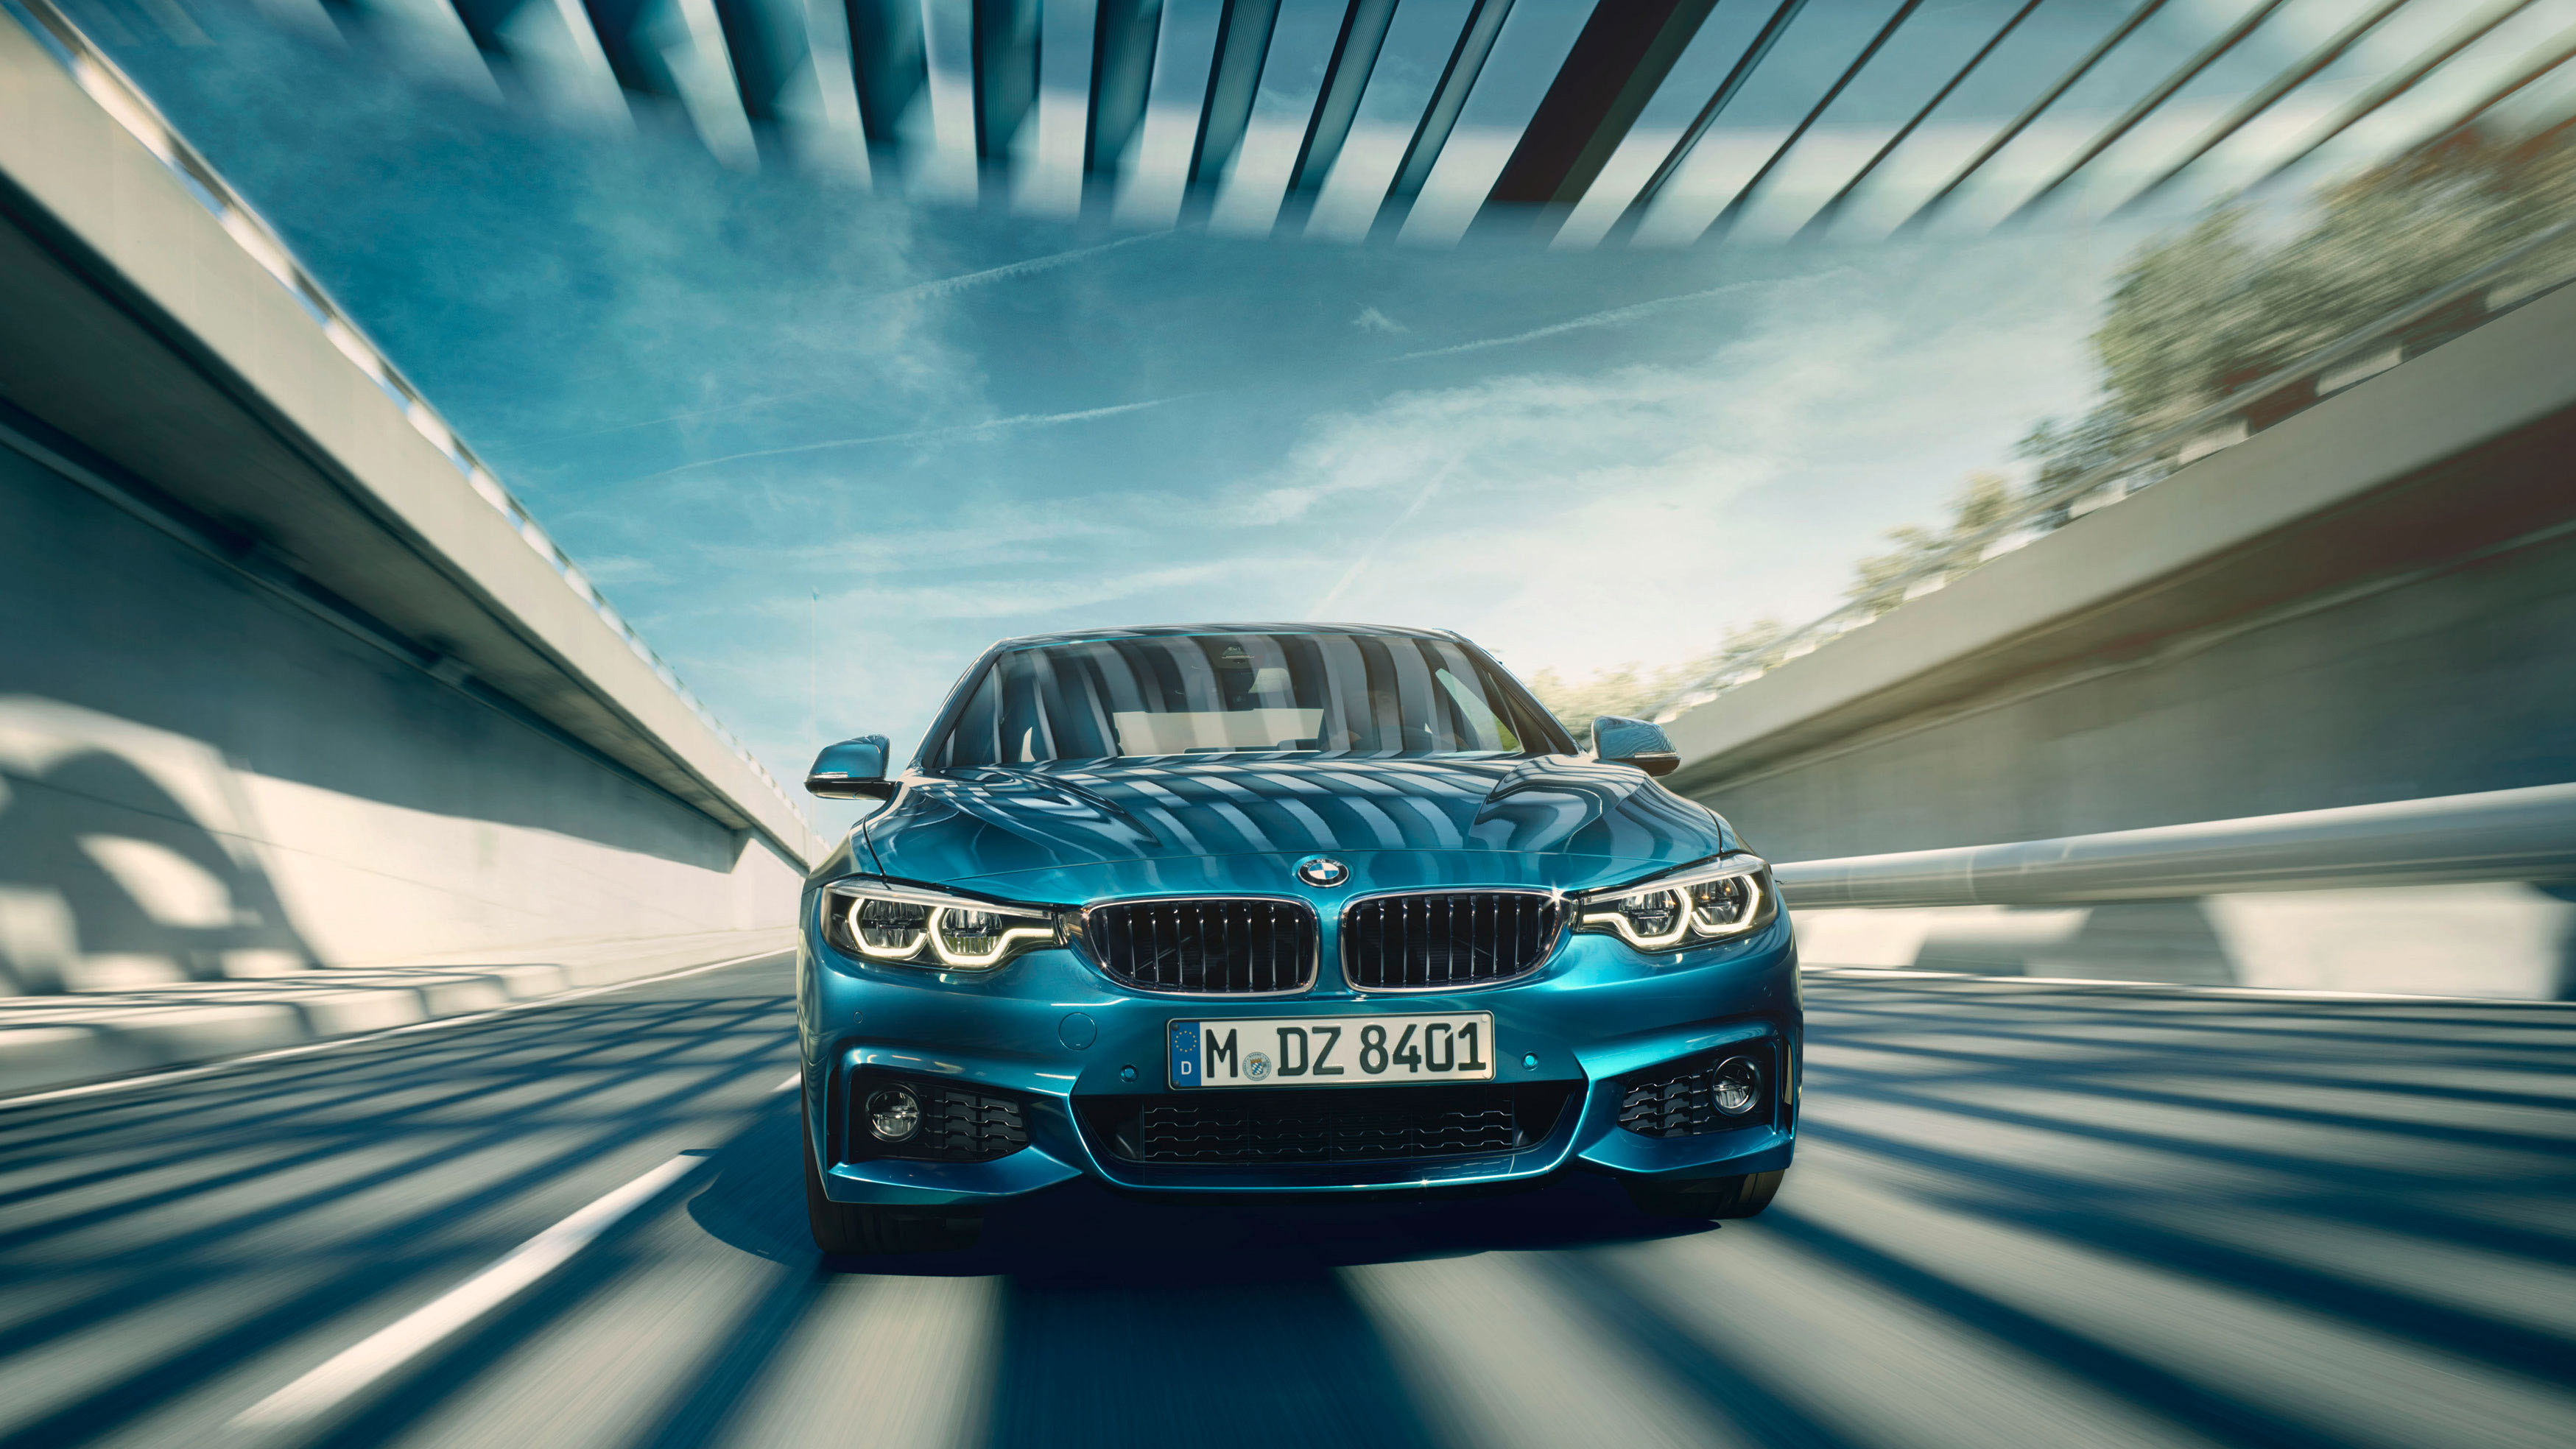 Bmw 4 Series Coupe 2017 Wallpaper Hd Car Wallpapers Id